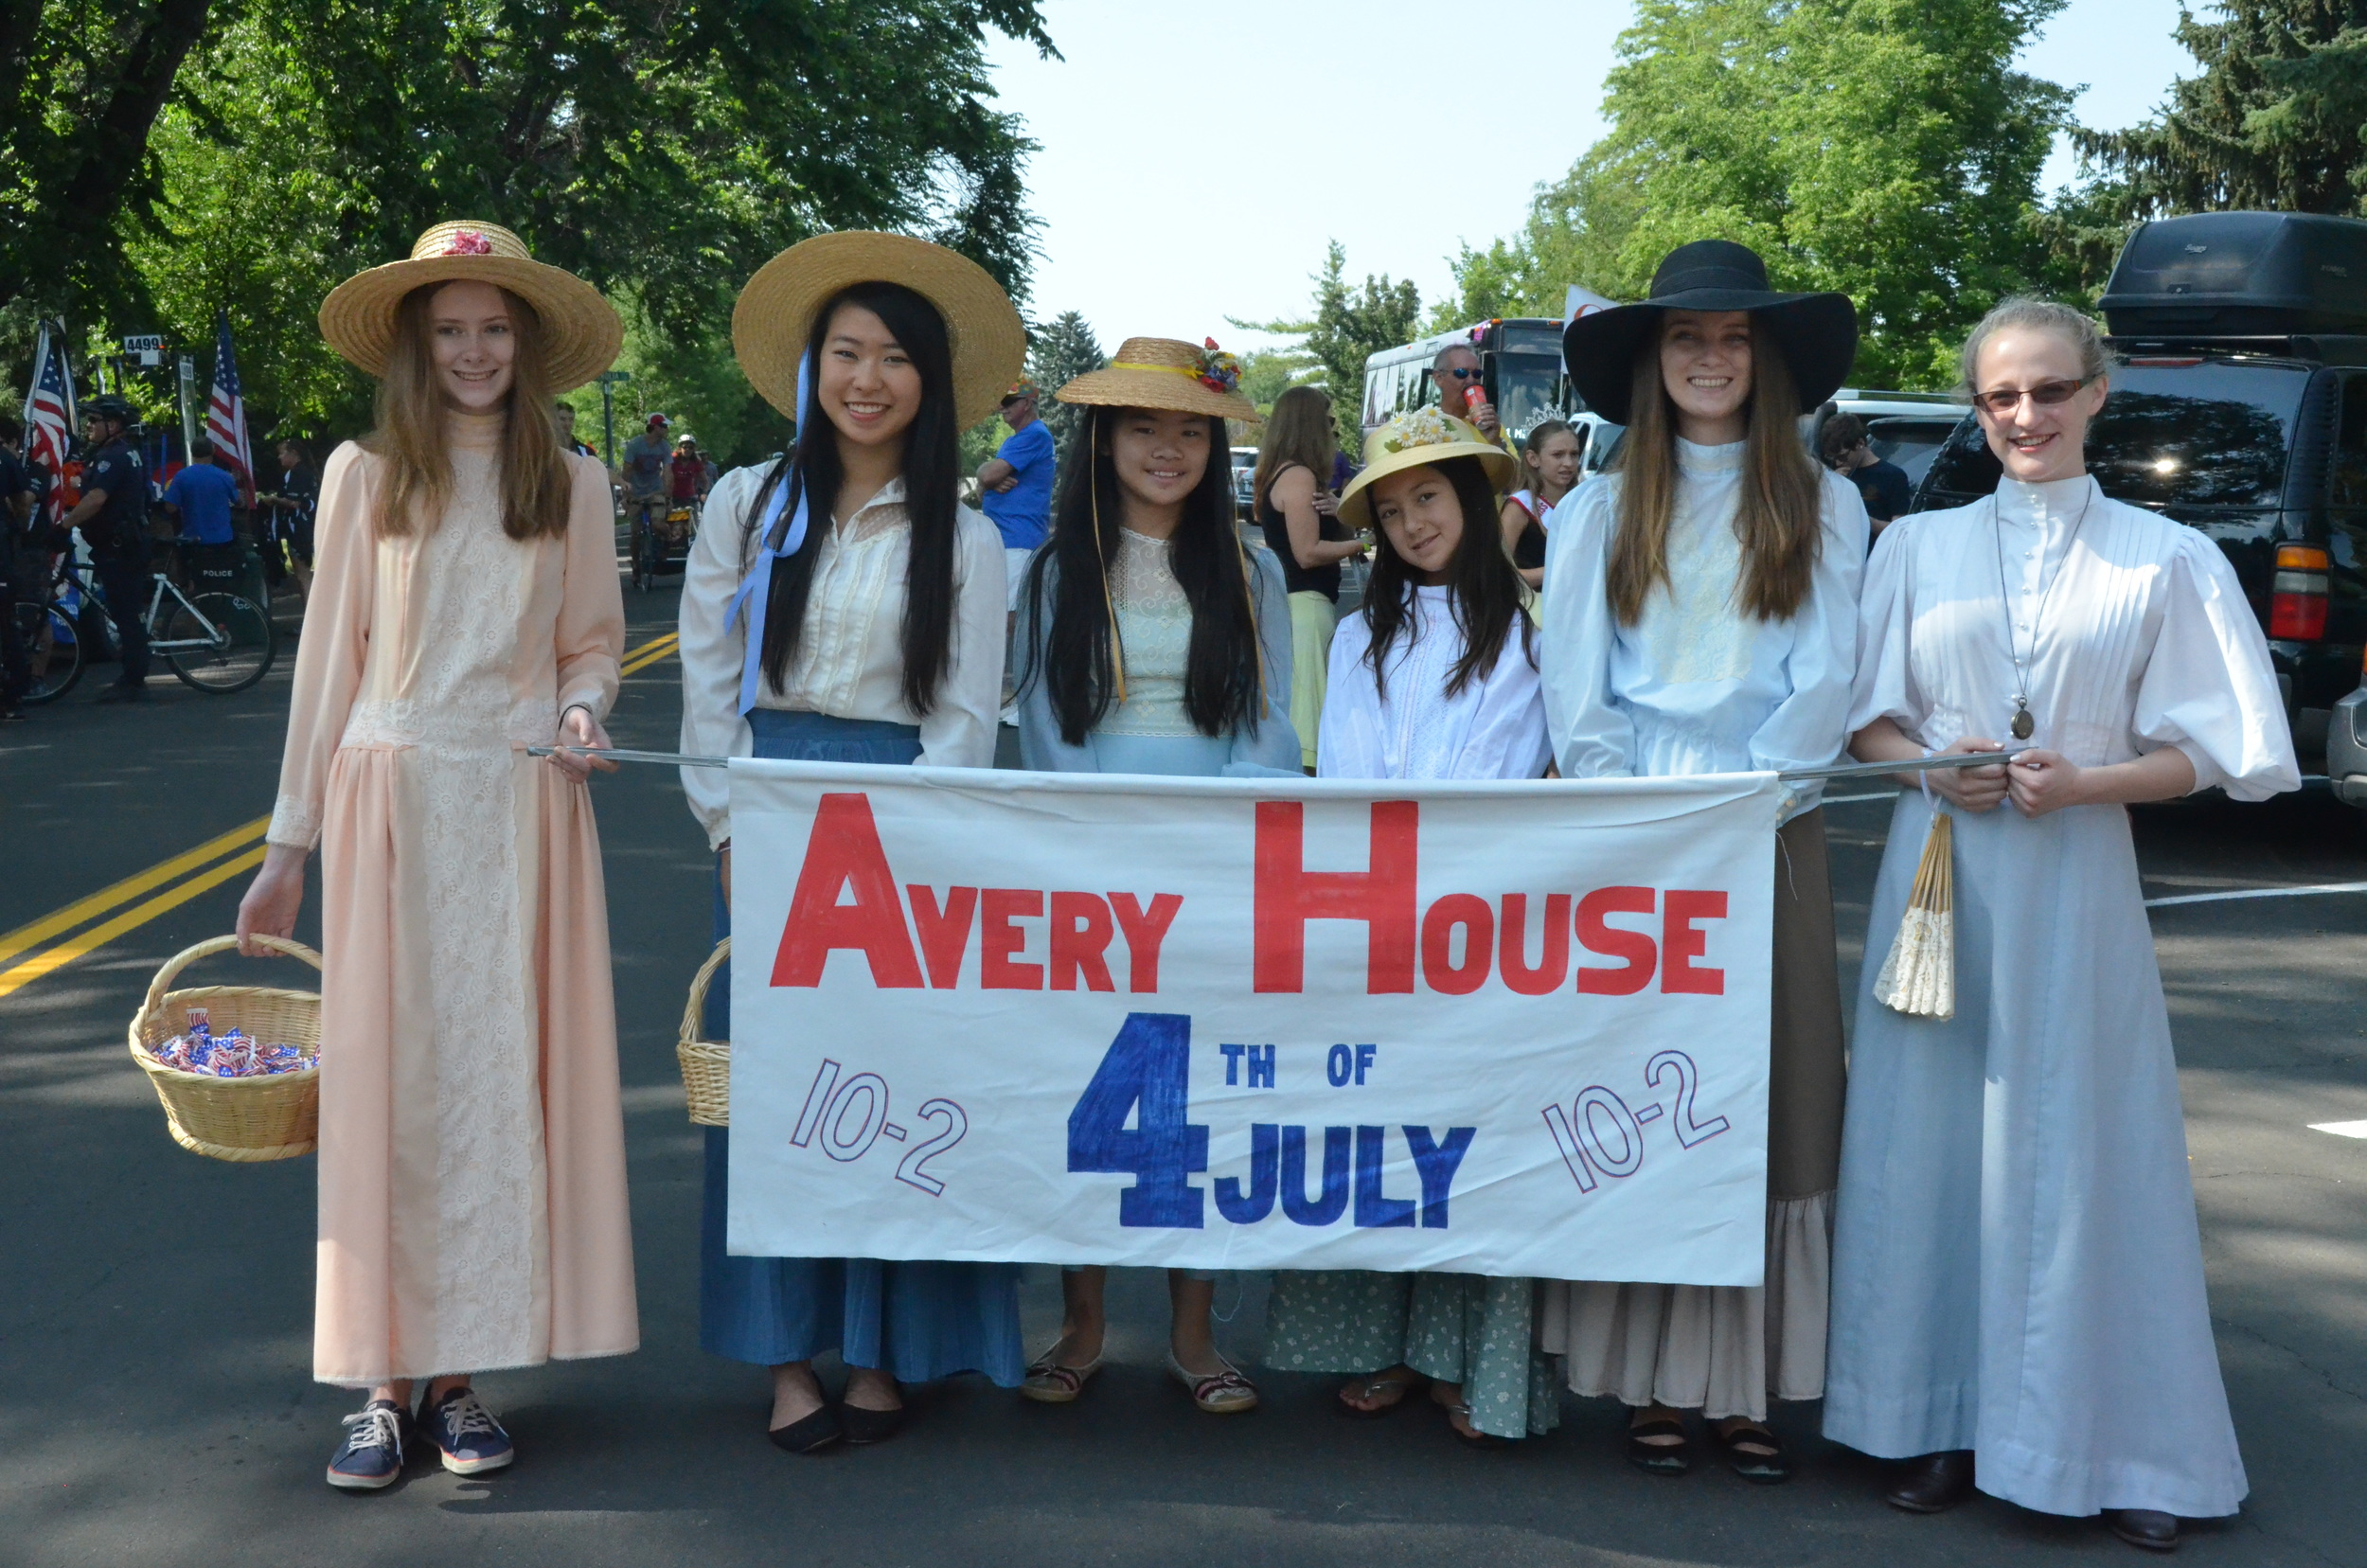 The city's July 4th parade includes Avery volunteers